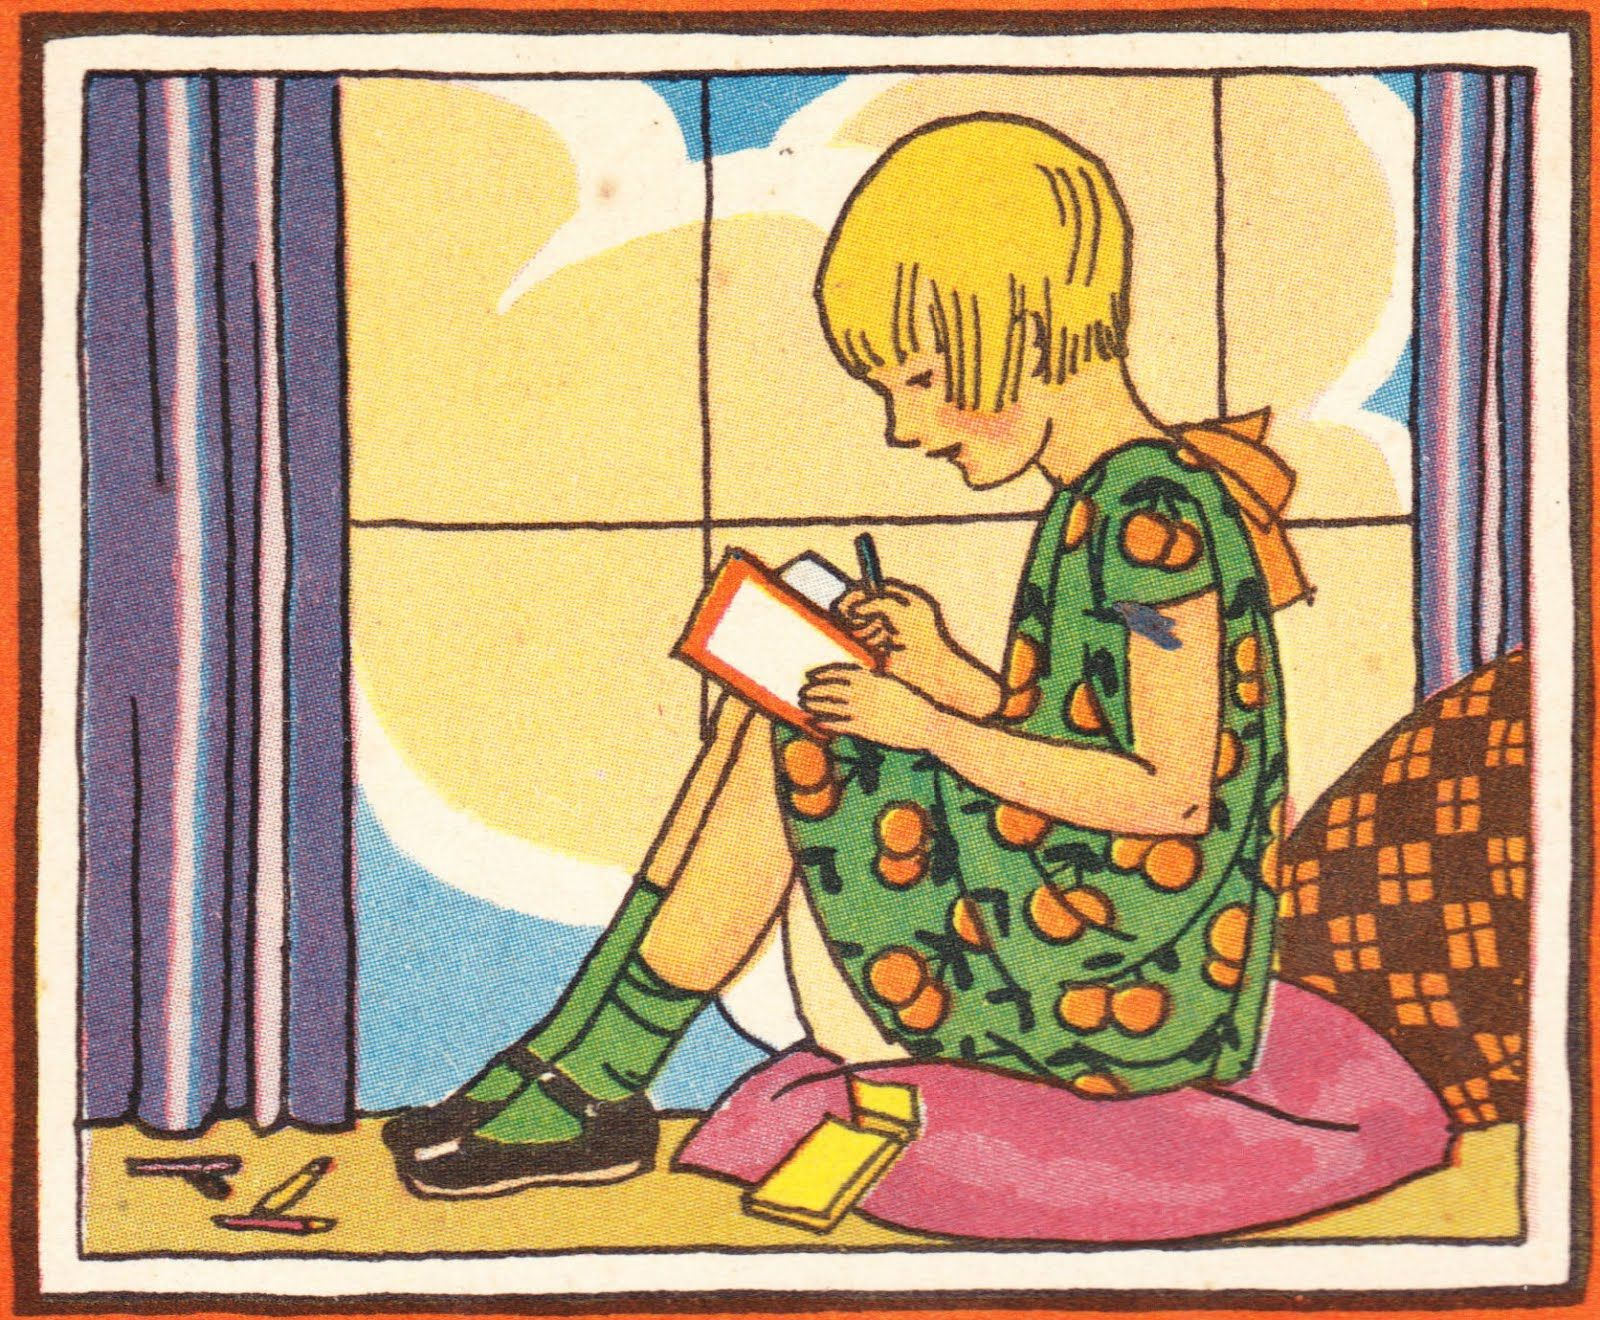 """Illustration by Electra Papadopoulos from the Quaker Oats Book """"Around the World with Hob"""", 1929..."""